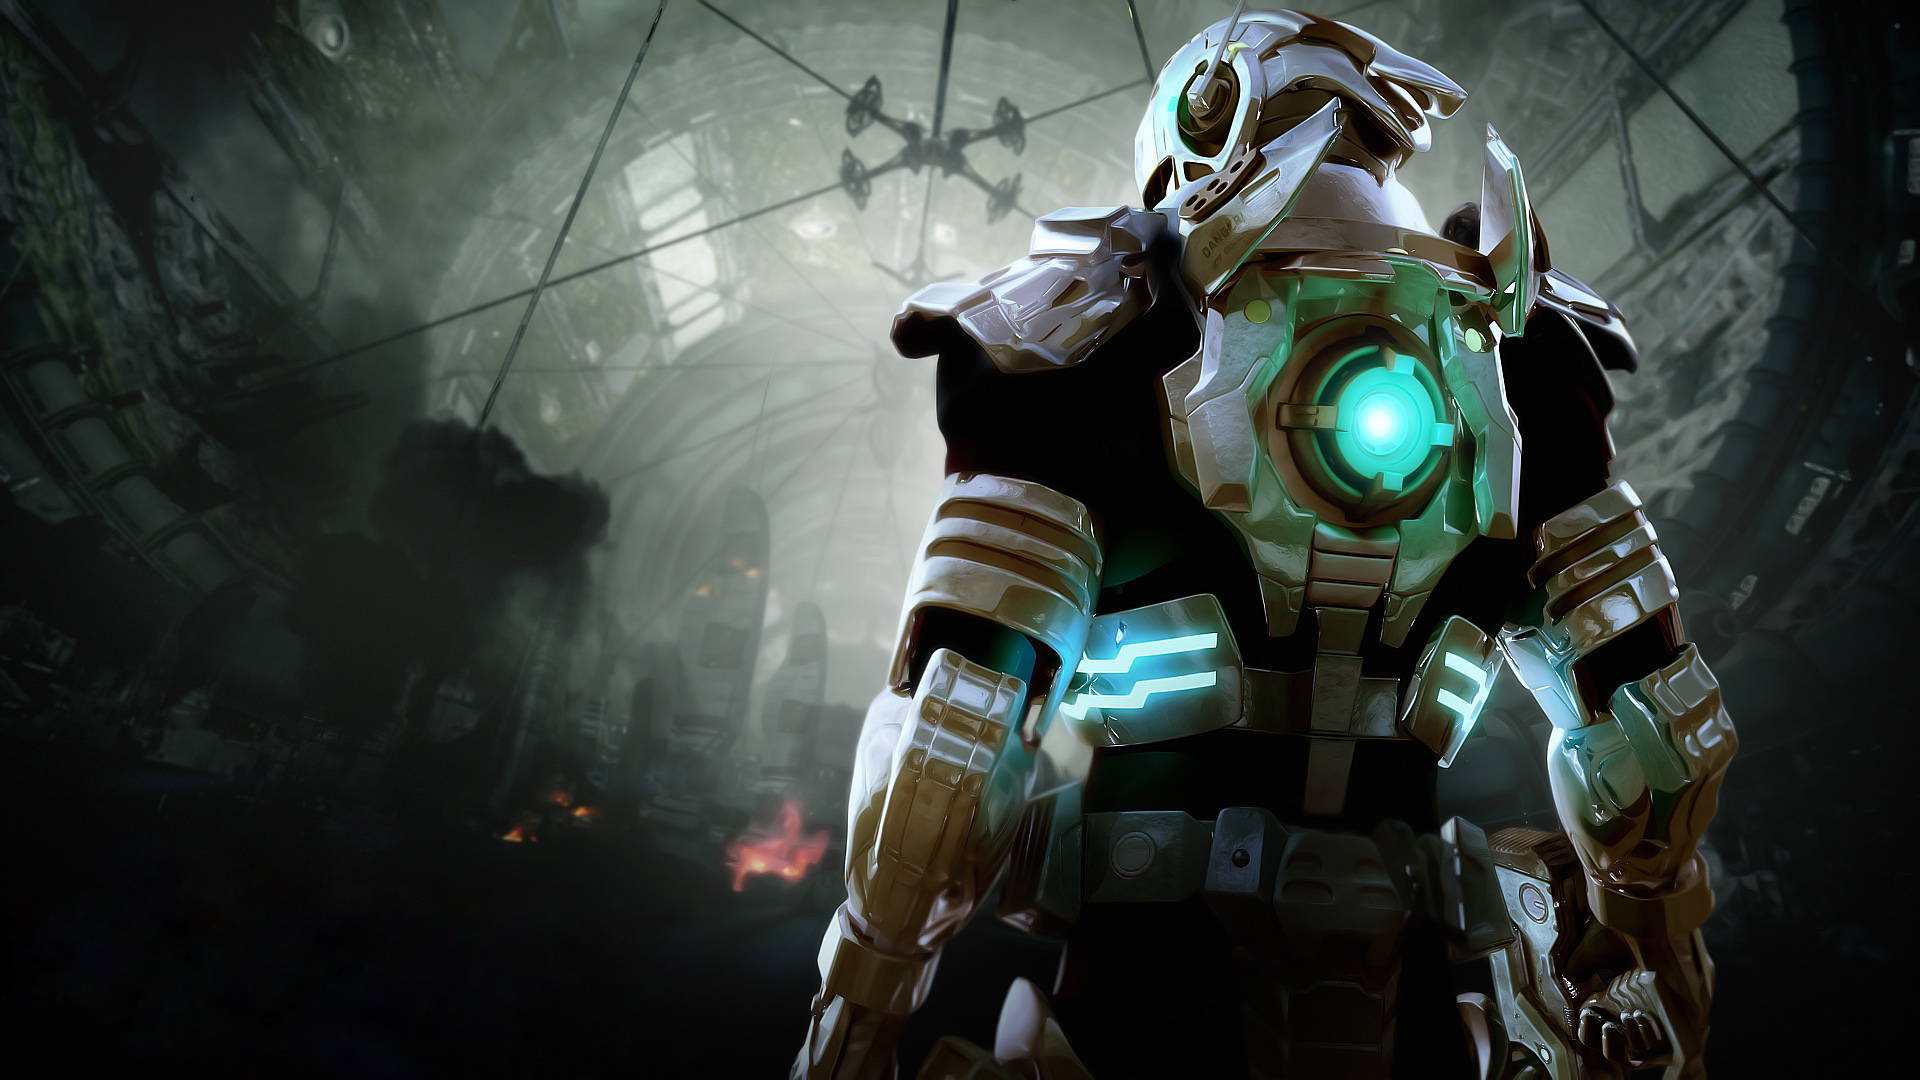 Sci Fi Robot Wallpaper HD 19 High Resolution Wallpaper Full Size 1920x1080